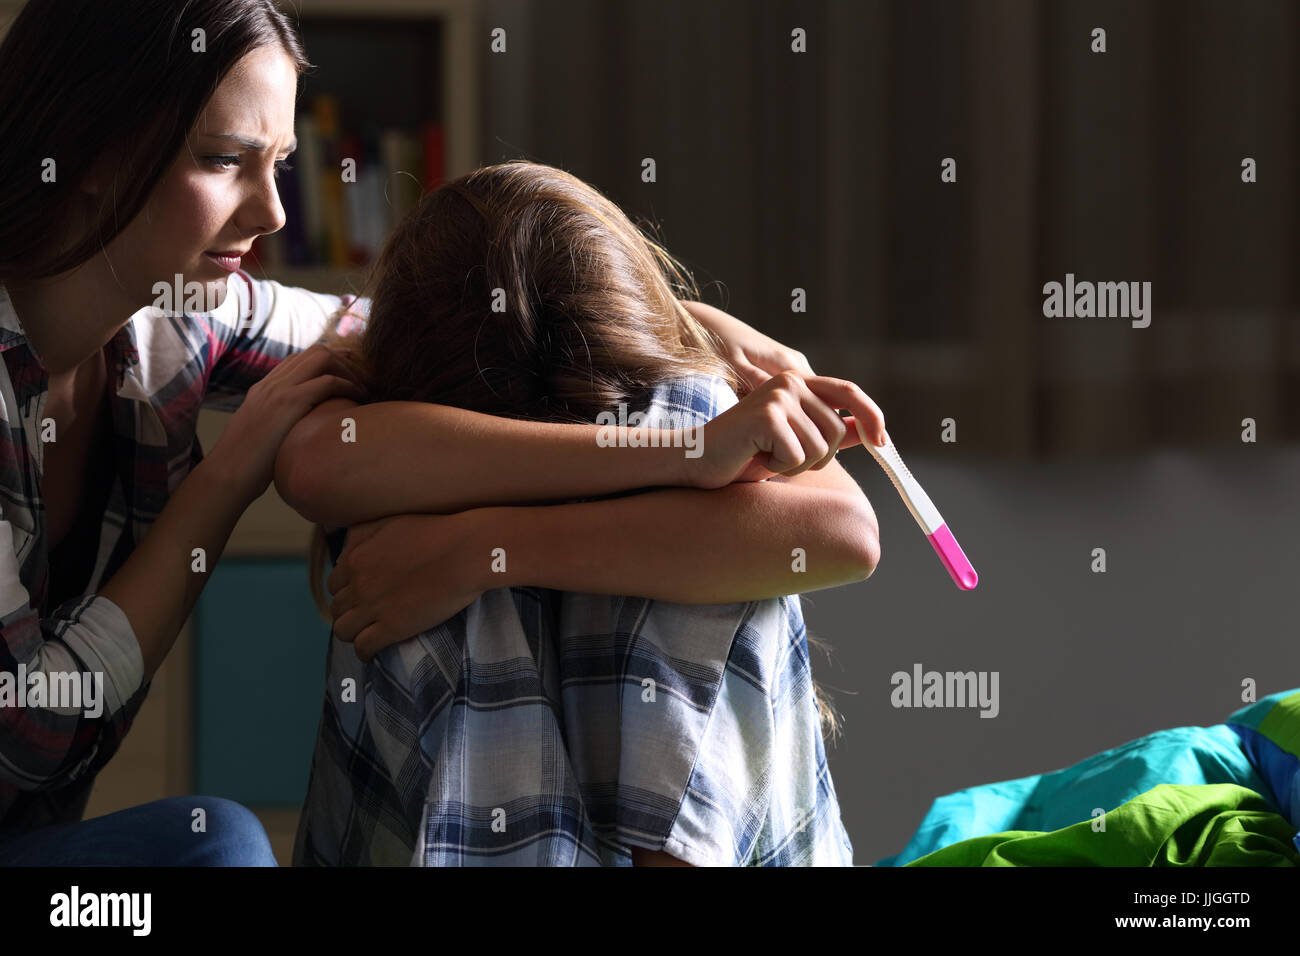 Sister comforting to a pregnant sad teen in her bedroom with a dark light in the background - Stock Image